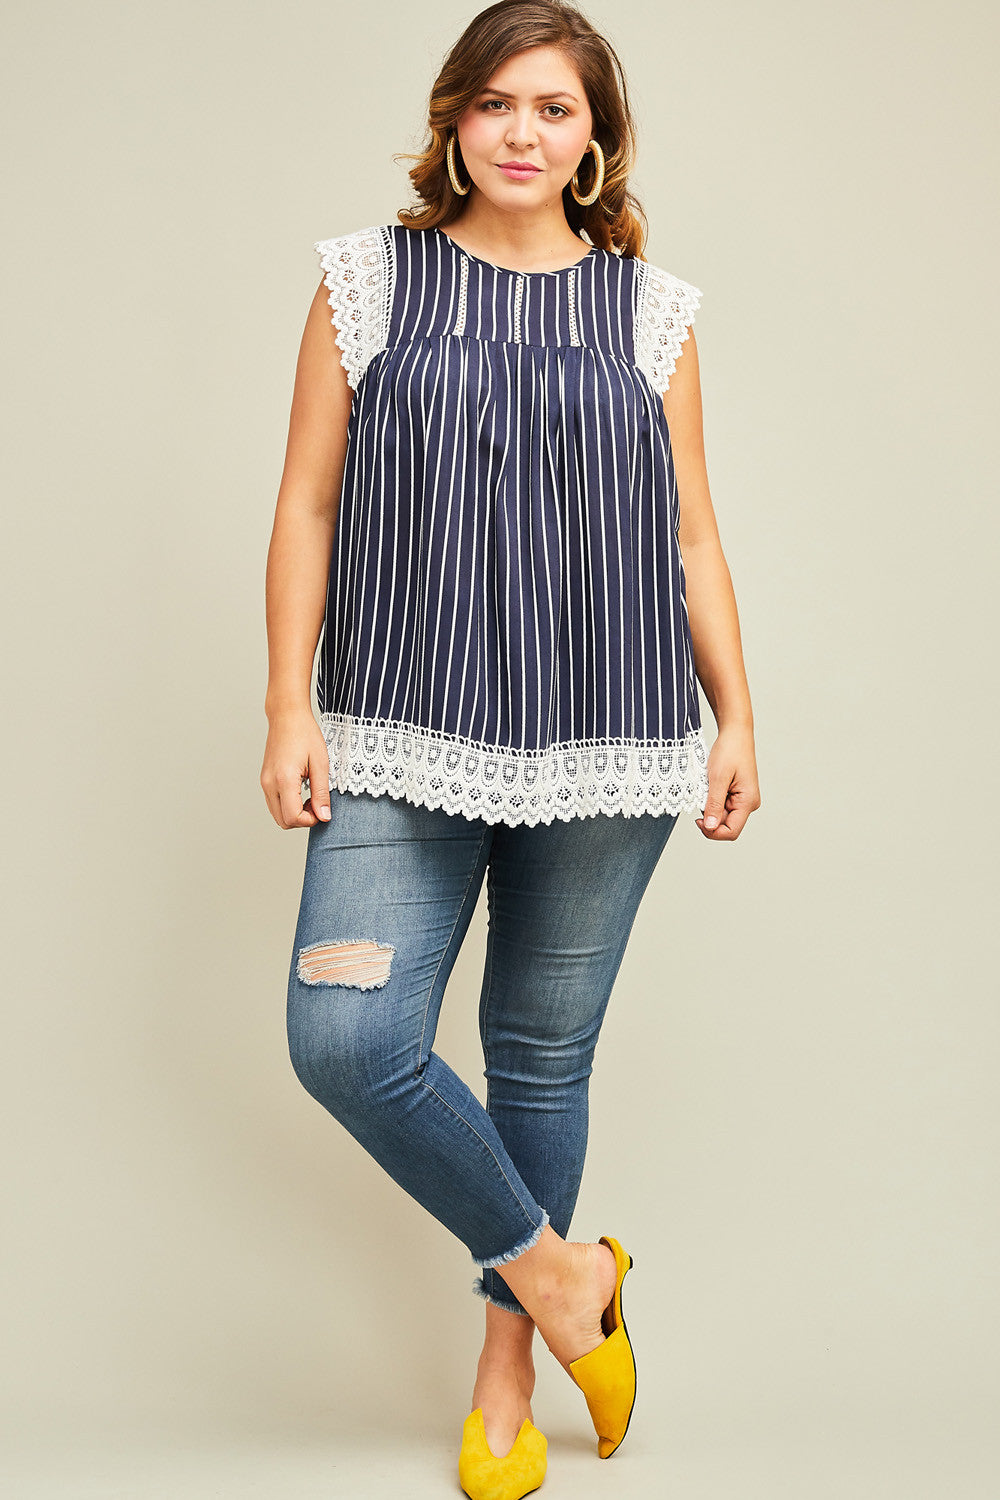 Navy Stripe Sleeveless Top with Lace Detail